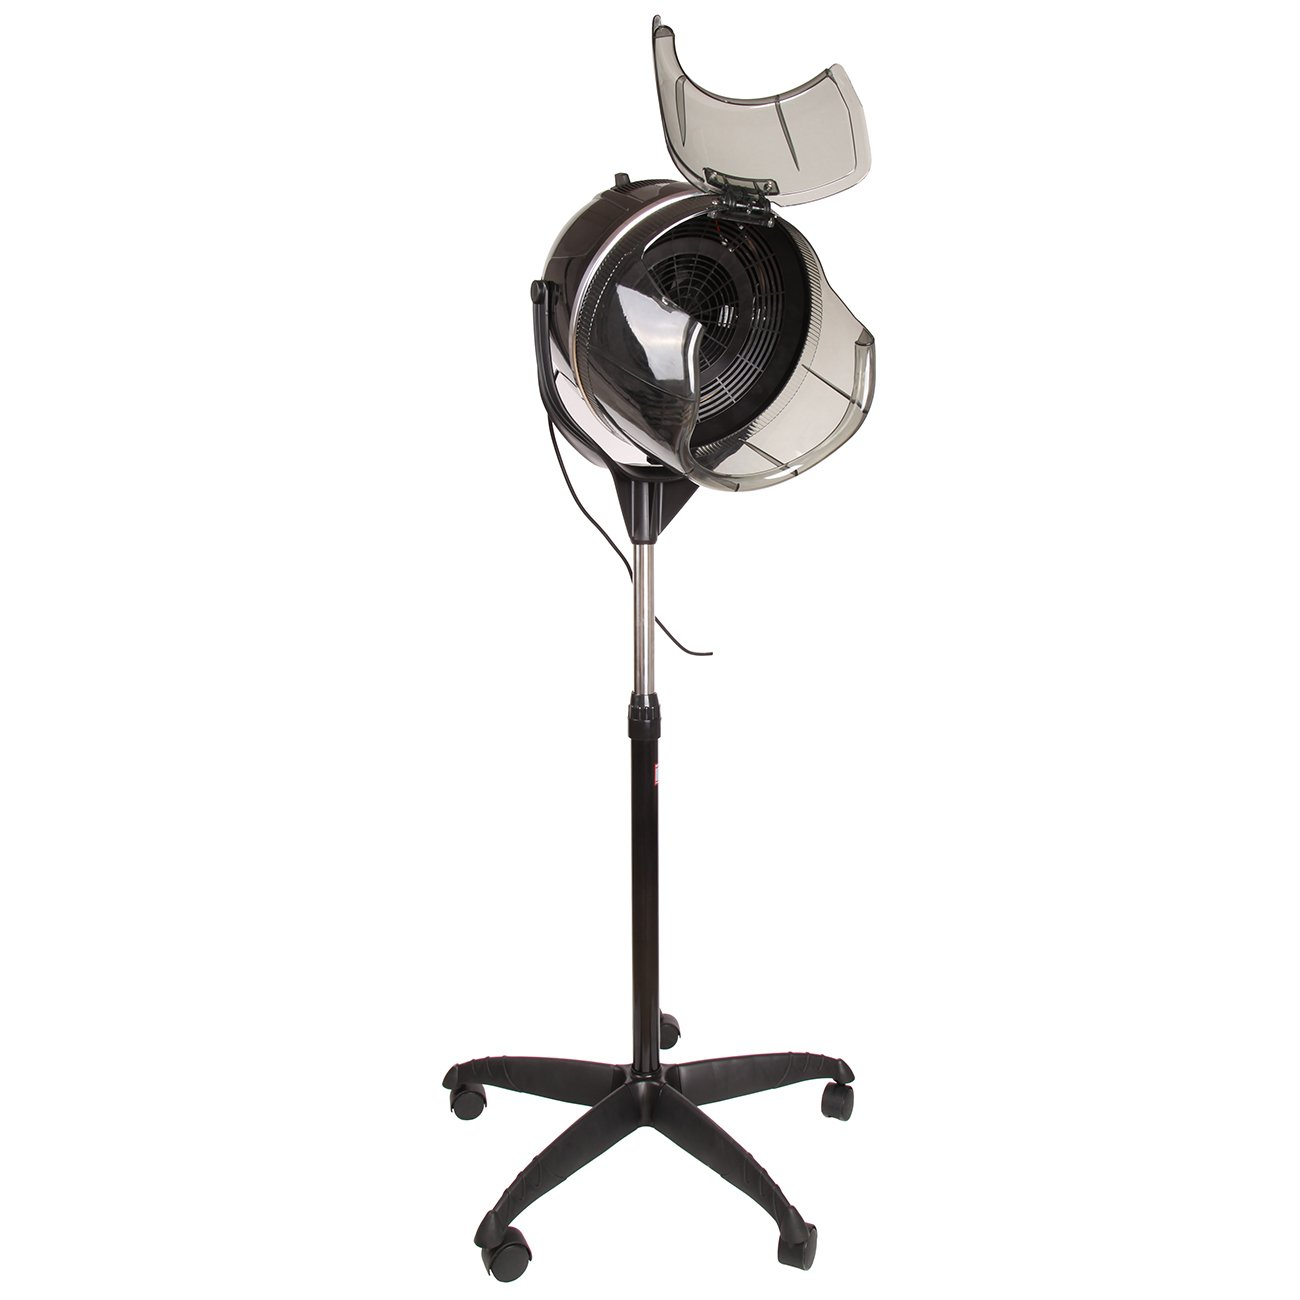 Ambienceo 900W Professional Height Adjustable Salon Hair Hood Dryer Floor Bonnet with Rolling Base